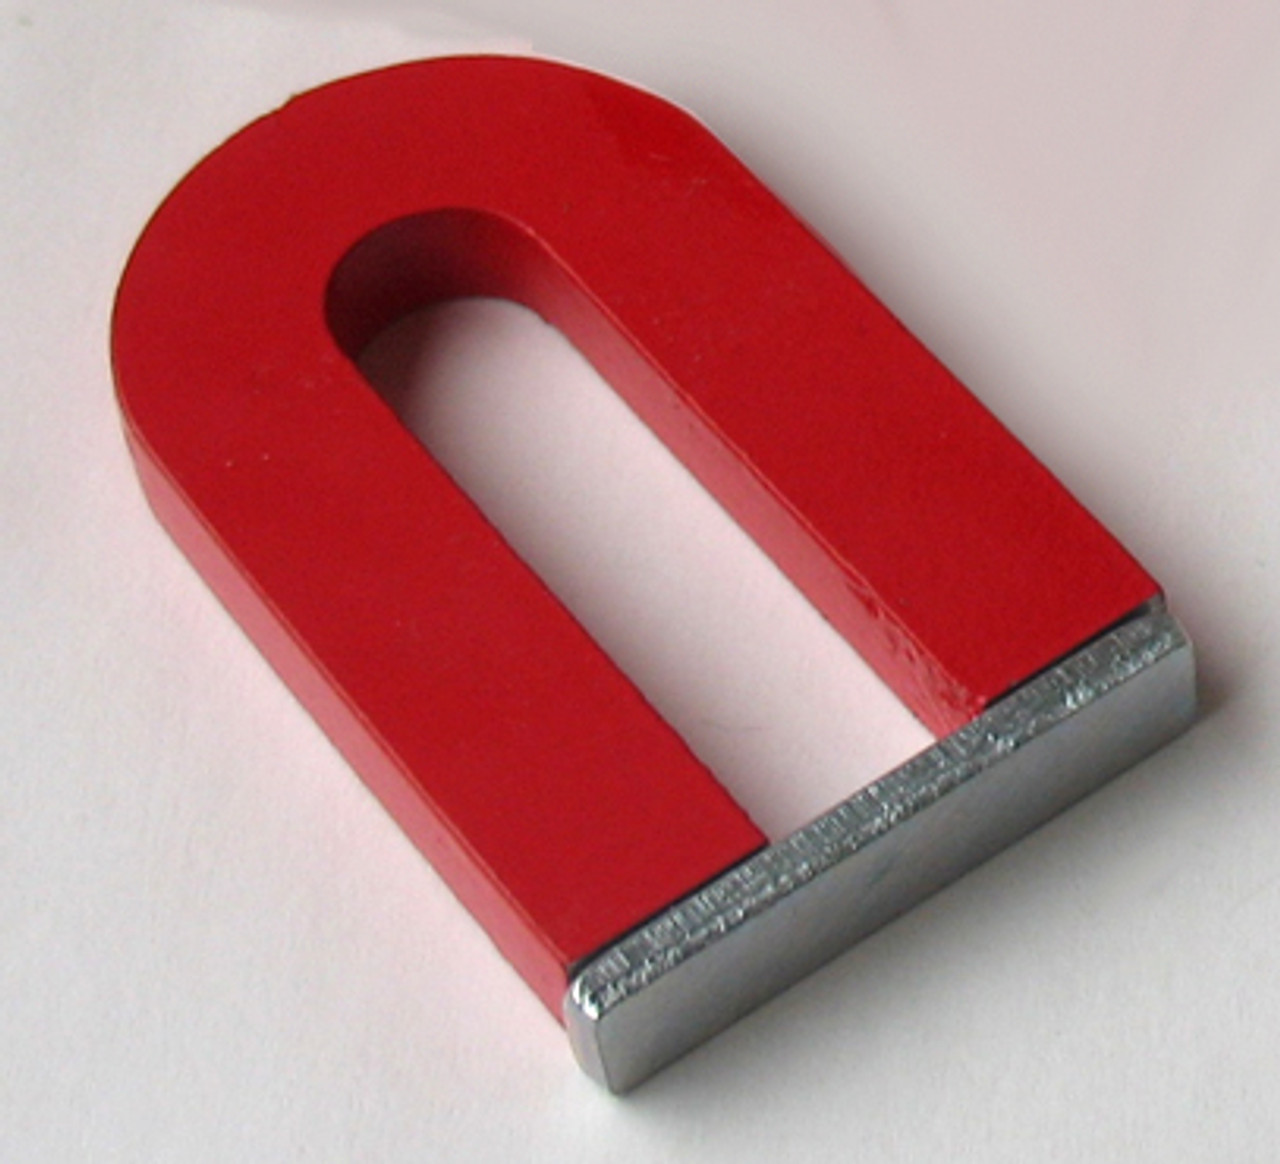 Horseshoe Magnet, 2 inch, ALNICO, Wholesale, all red